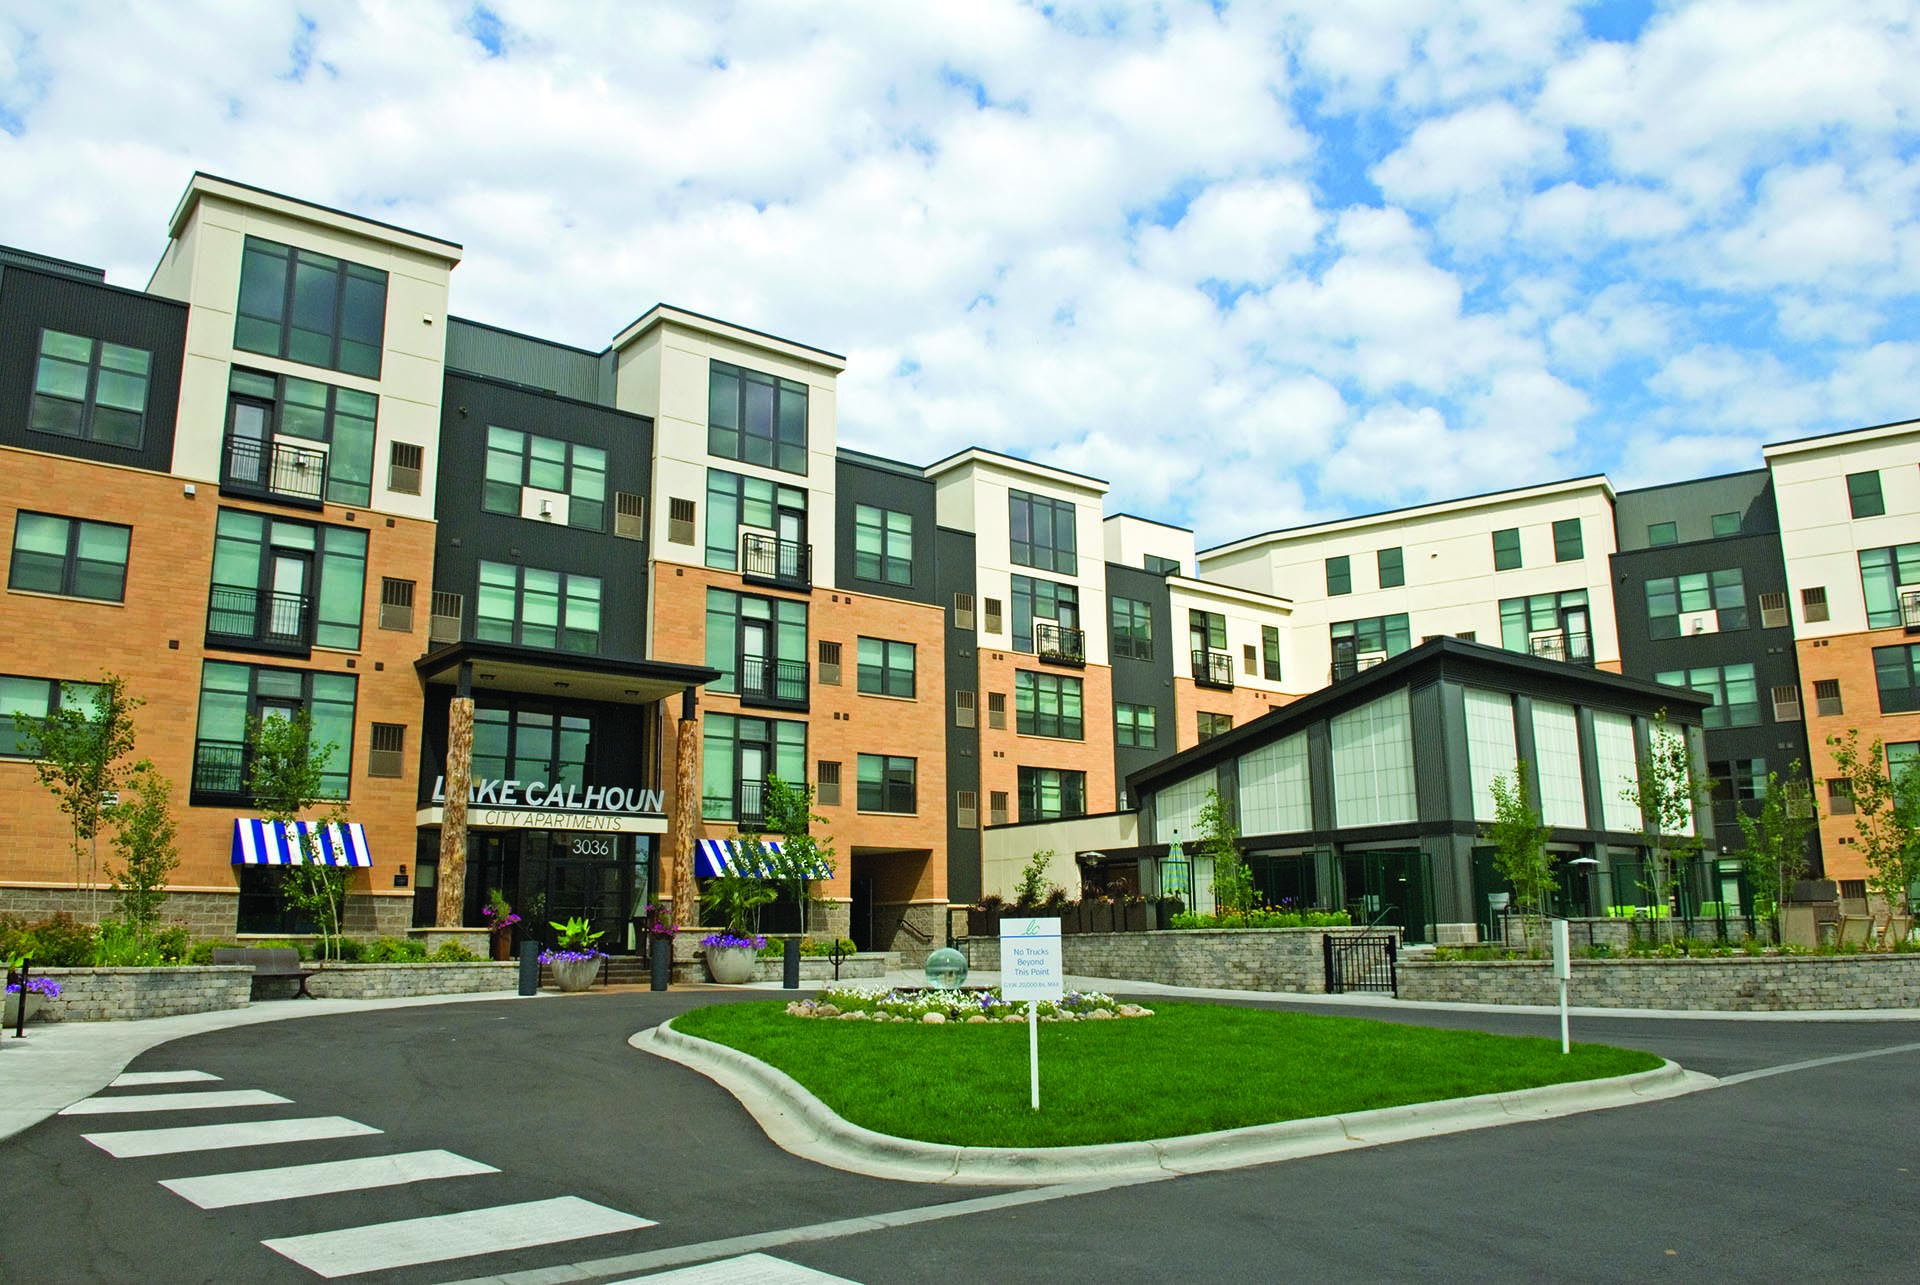 Apartment complex sold in Uptown - StarTribune.com